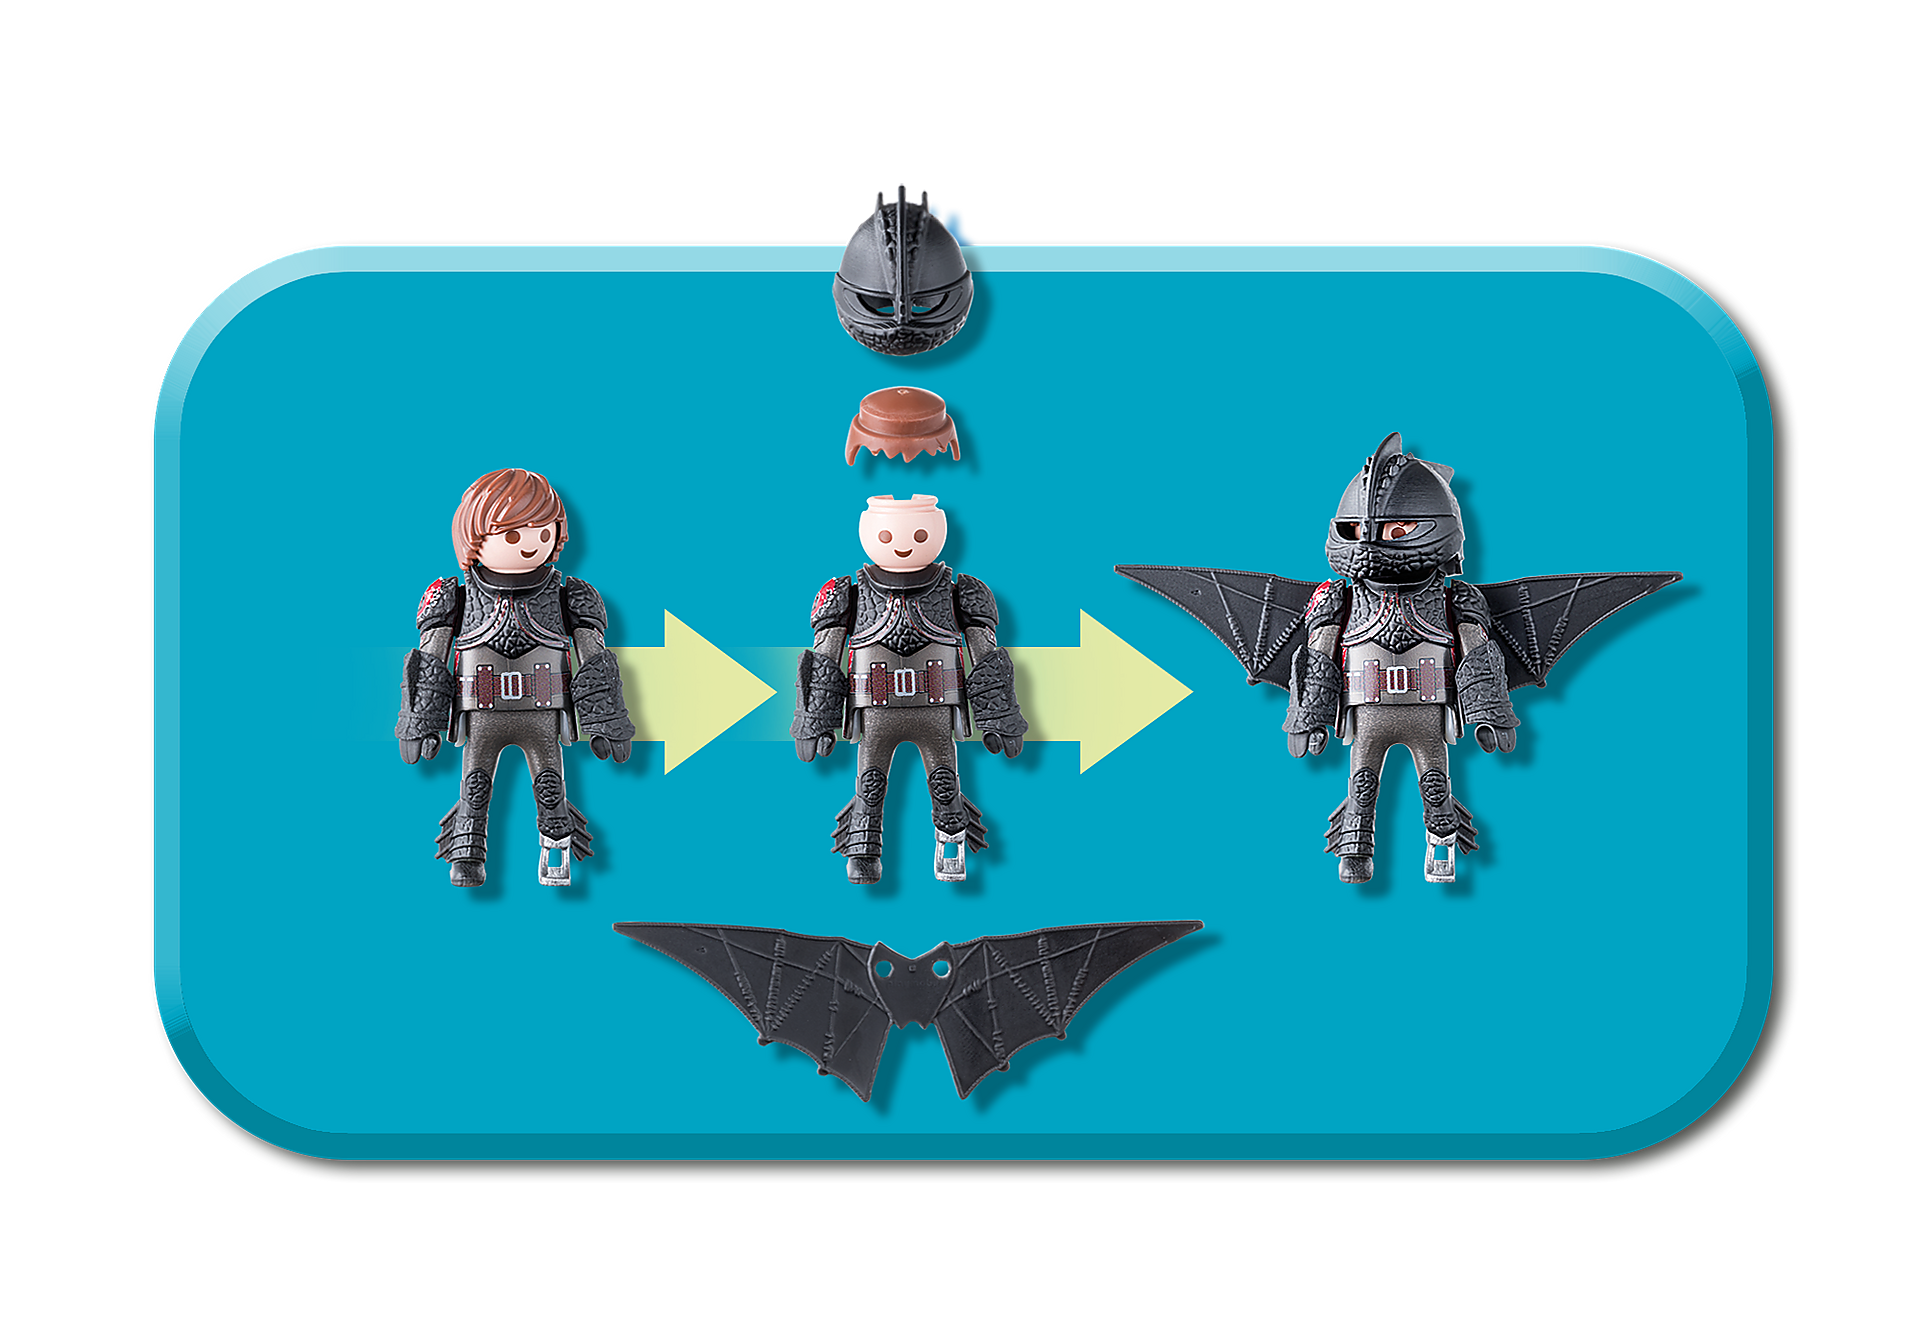 70037 Hiccup and Toothless Playset zoom image6